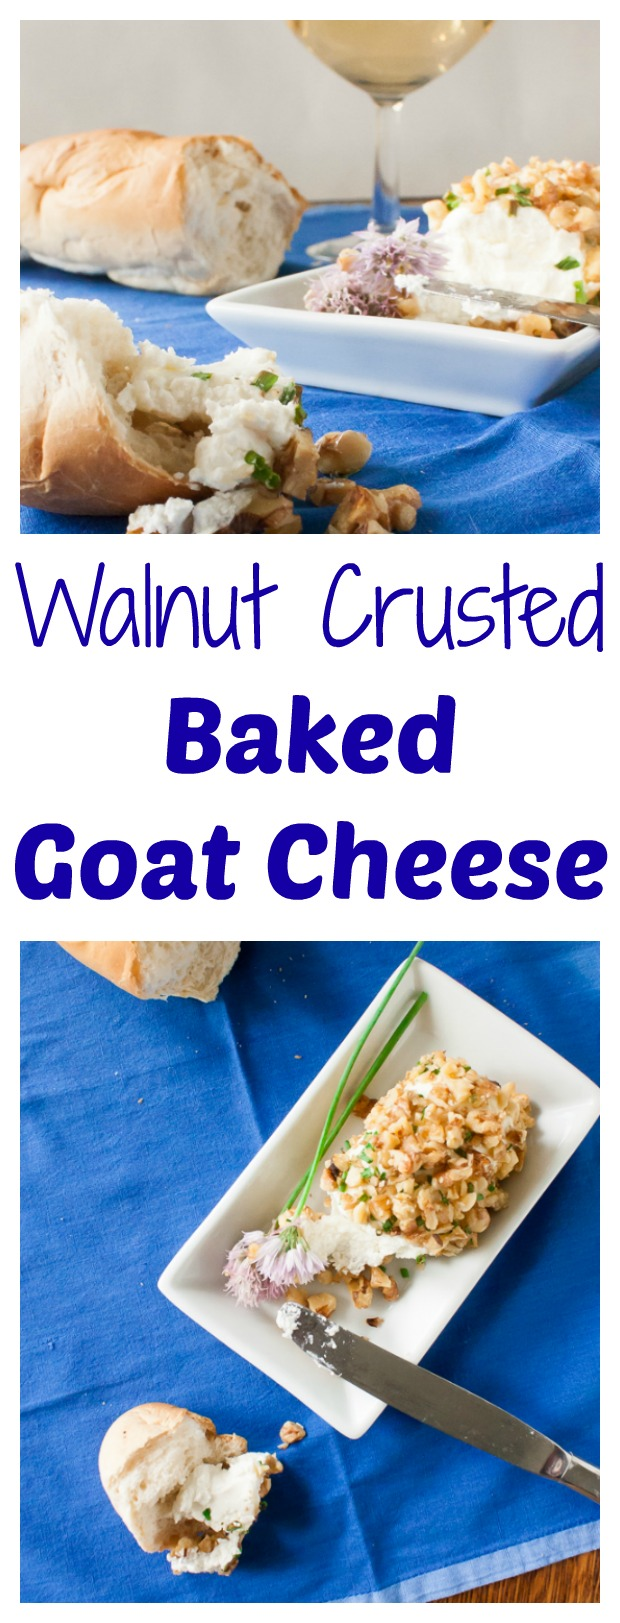 Melty goat cheese. Toasted walnuts. Easy, classy app: Walnut Crusted Baked Goat Cheese | @tspcurry